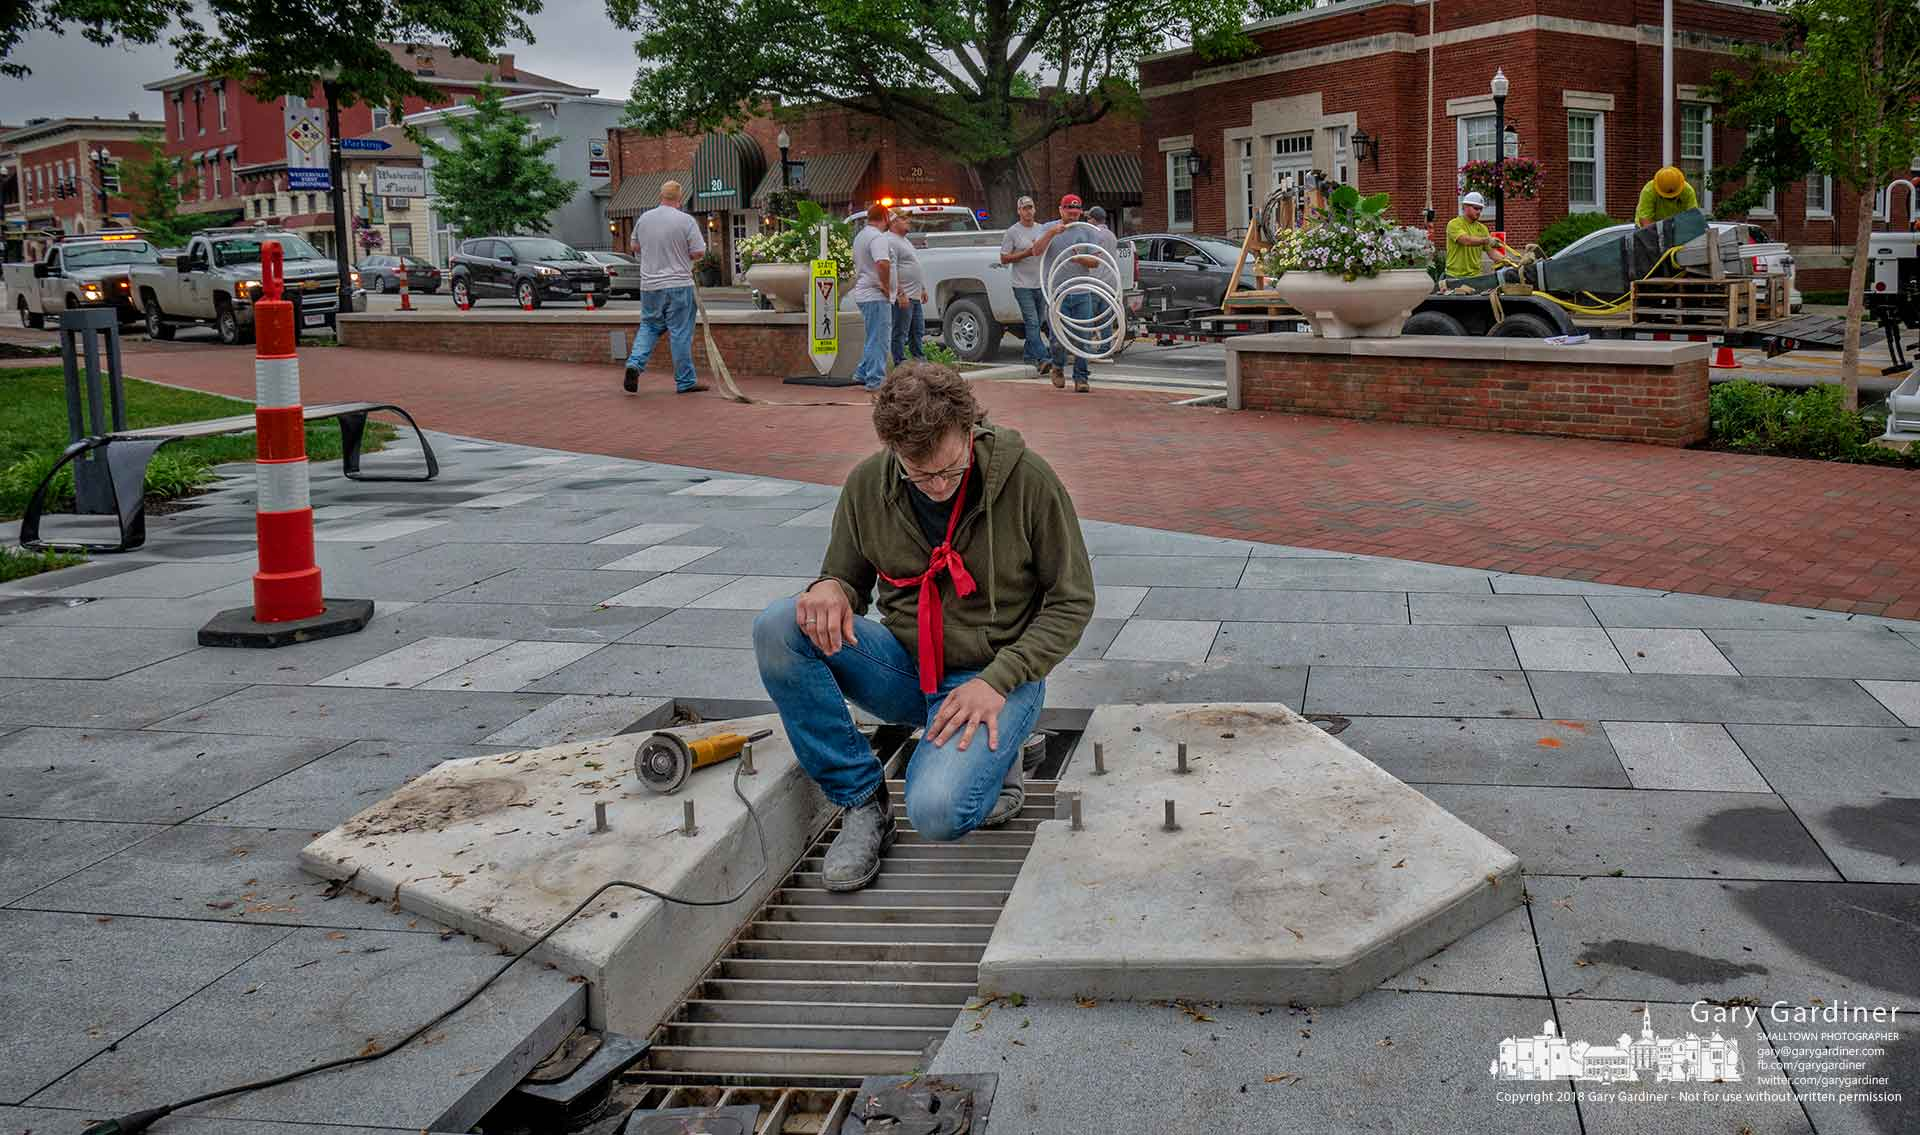 "Artist Mathew Gray Palmer inspects a section of the mount where his sculpture ""The American Issue"" will be installed in the courtyard in front of city hall. My Final Photo for June 13, 2018."